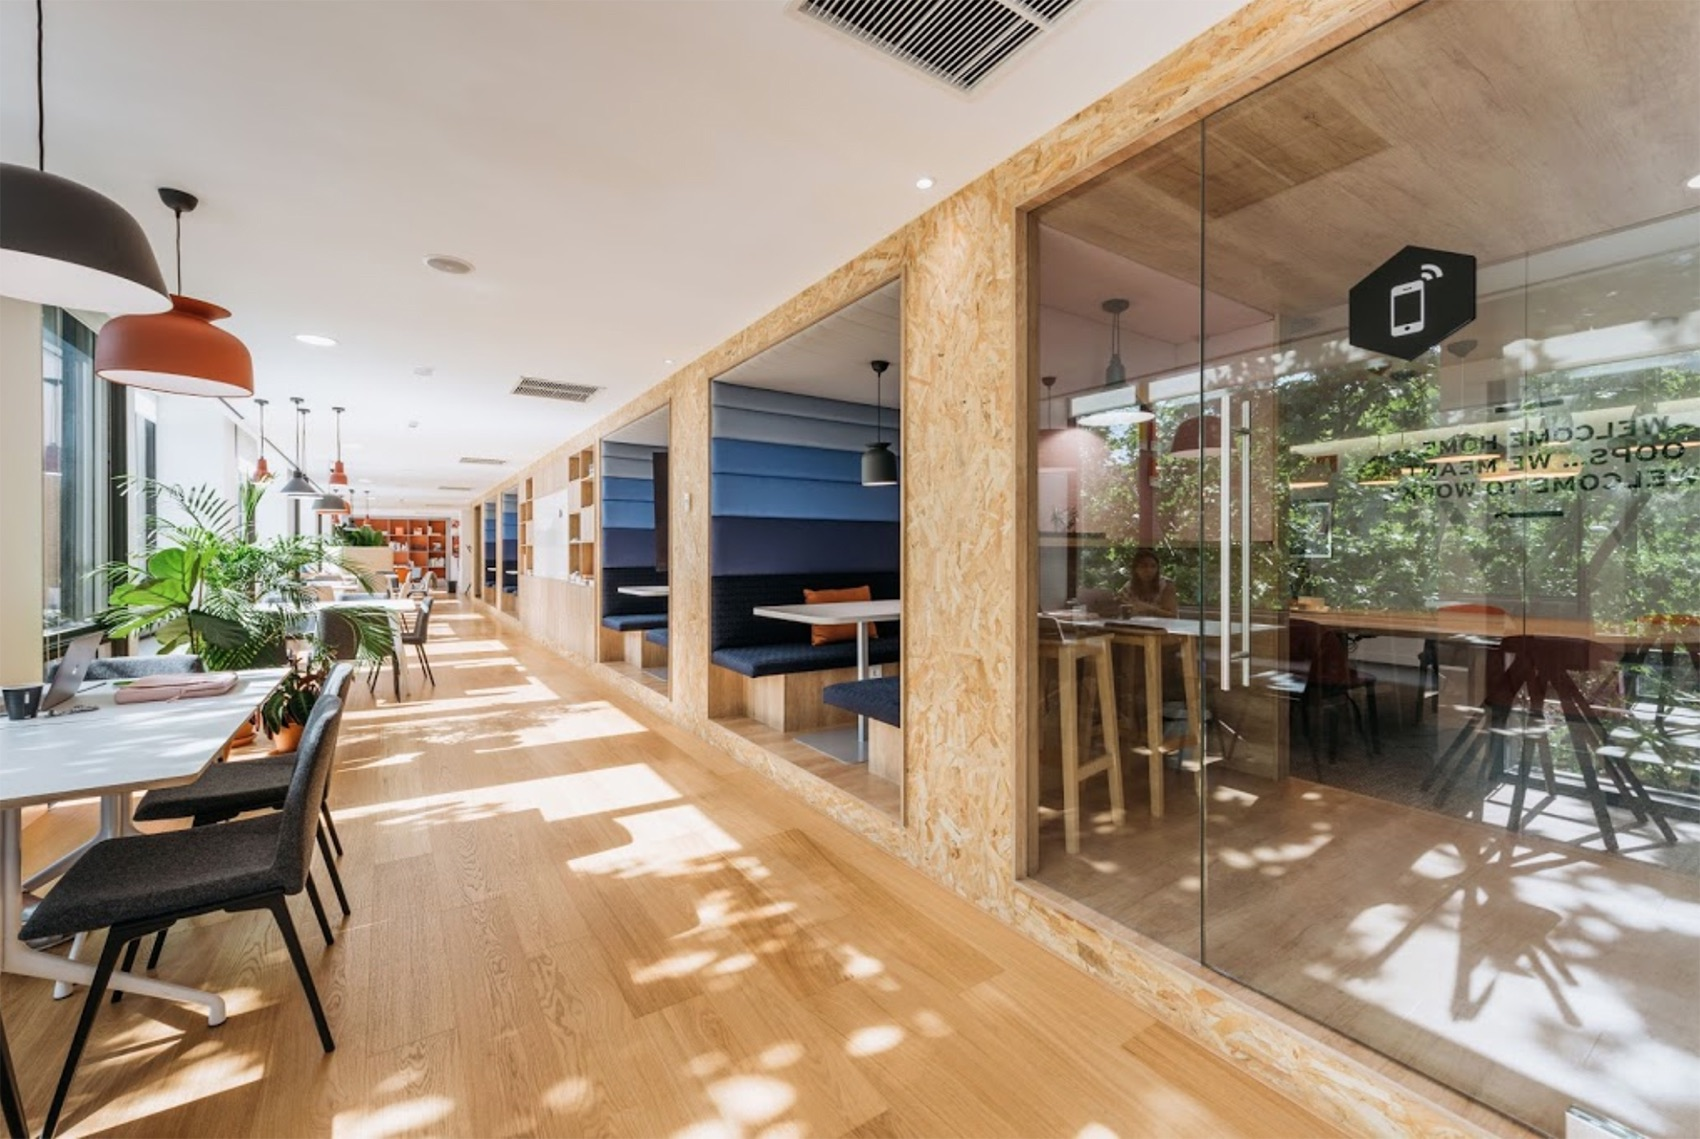 A Look Inside Spaces' Madrid Coworking Space – Atocha